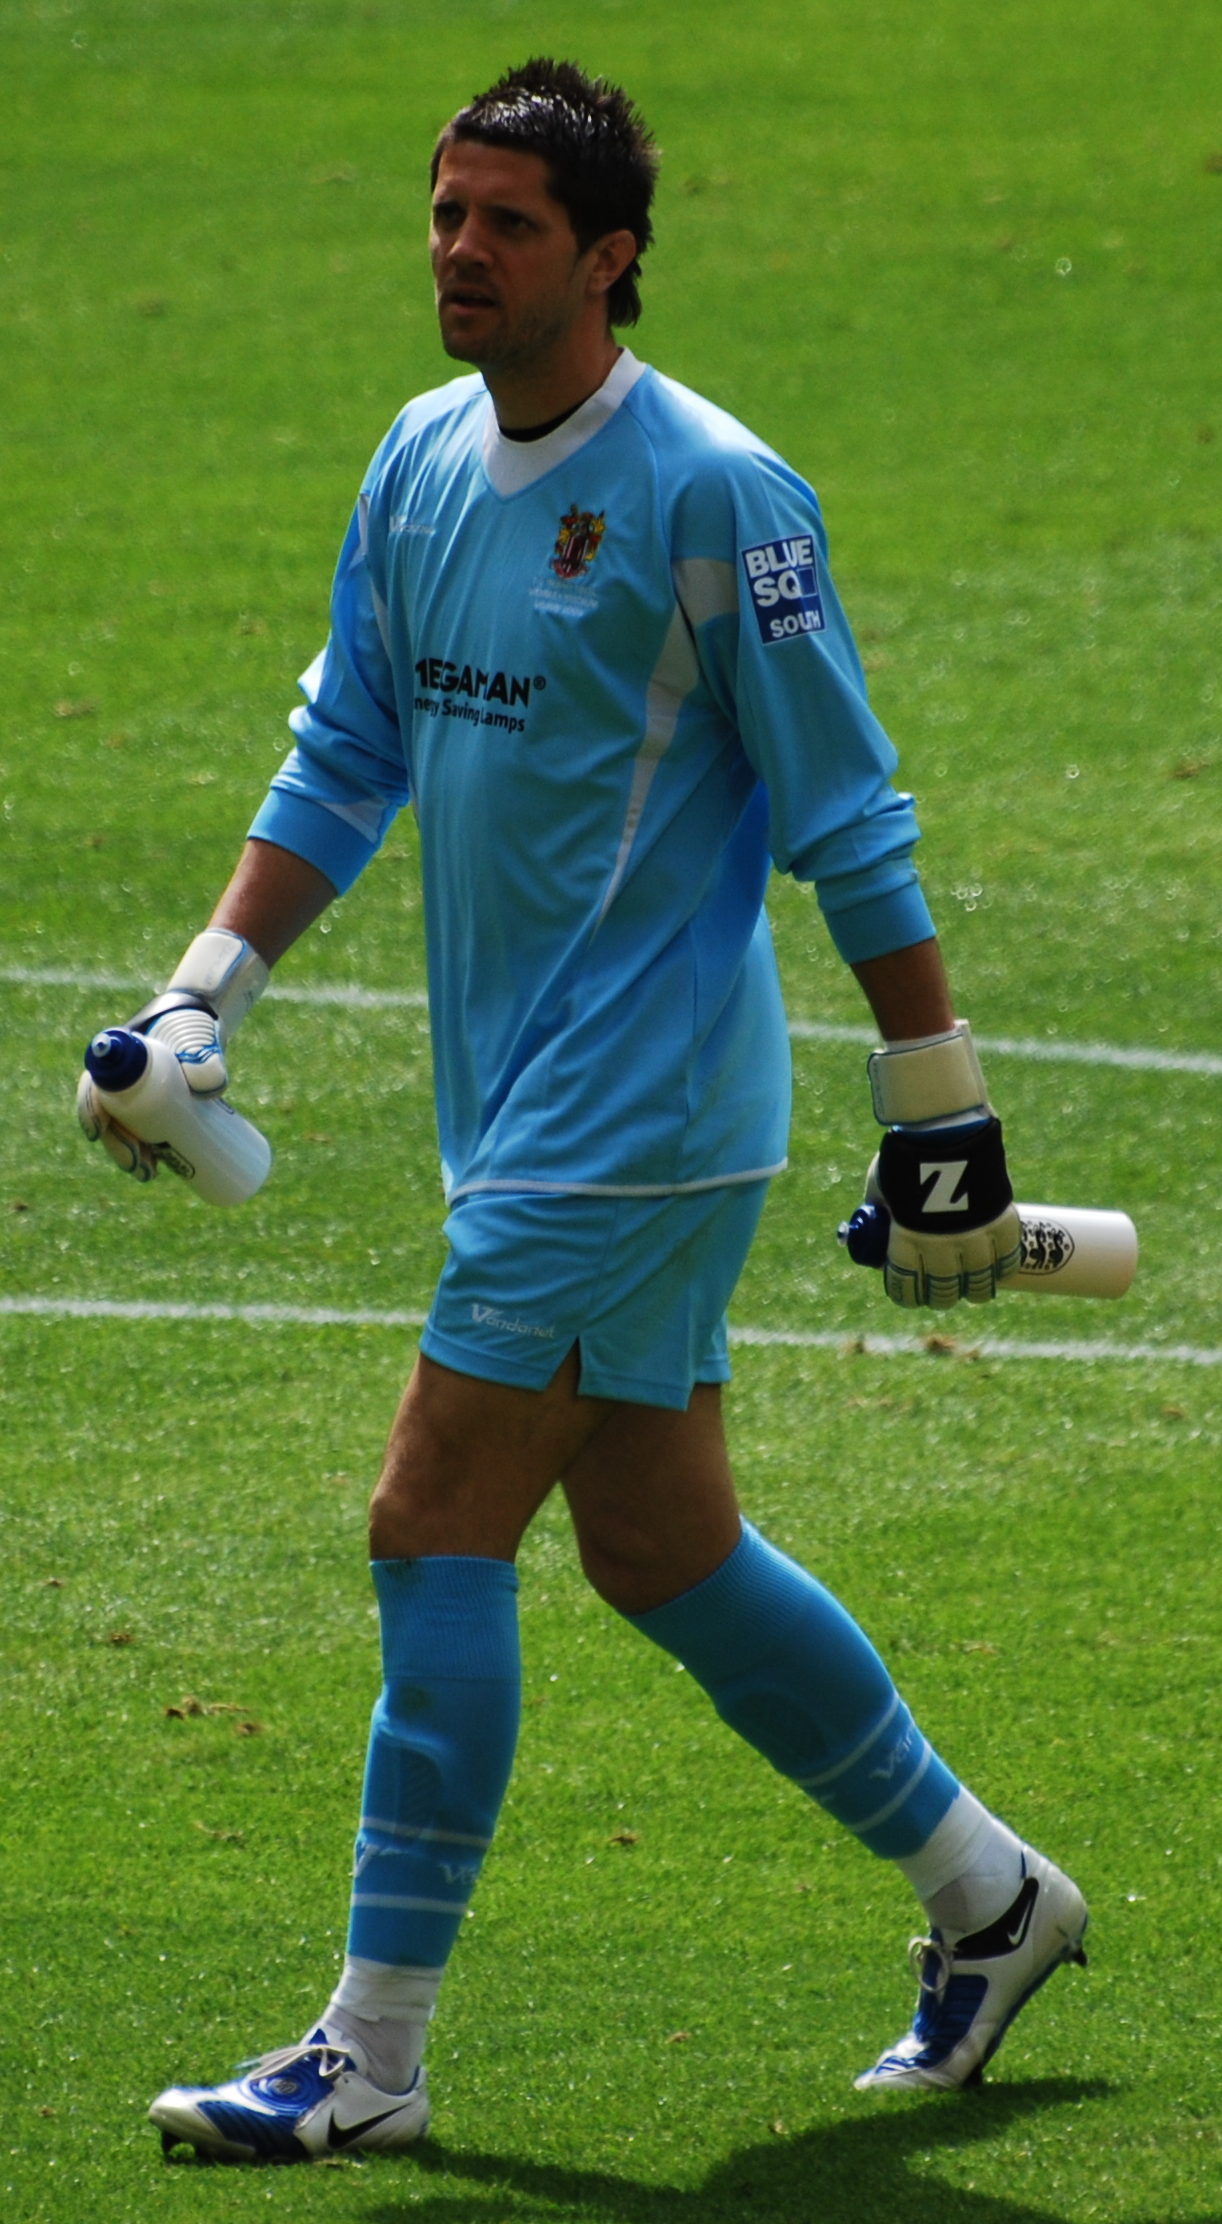 Day playing for [[Stevenage F.C.|Stevenage Borough]] in the [[2009 FA Trophy Final]]